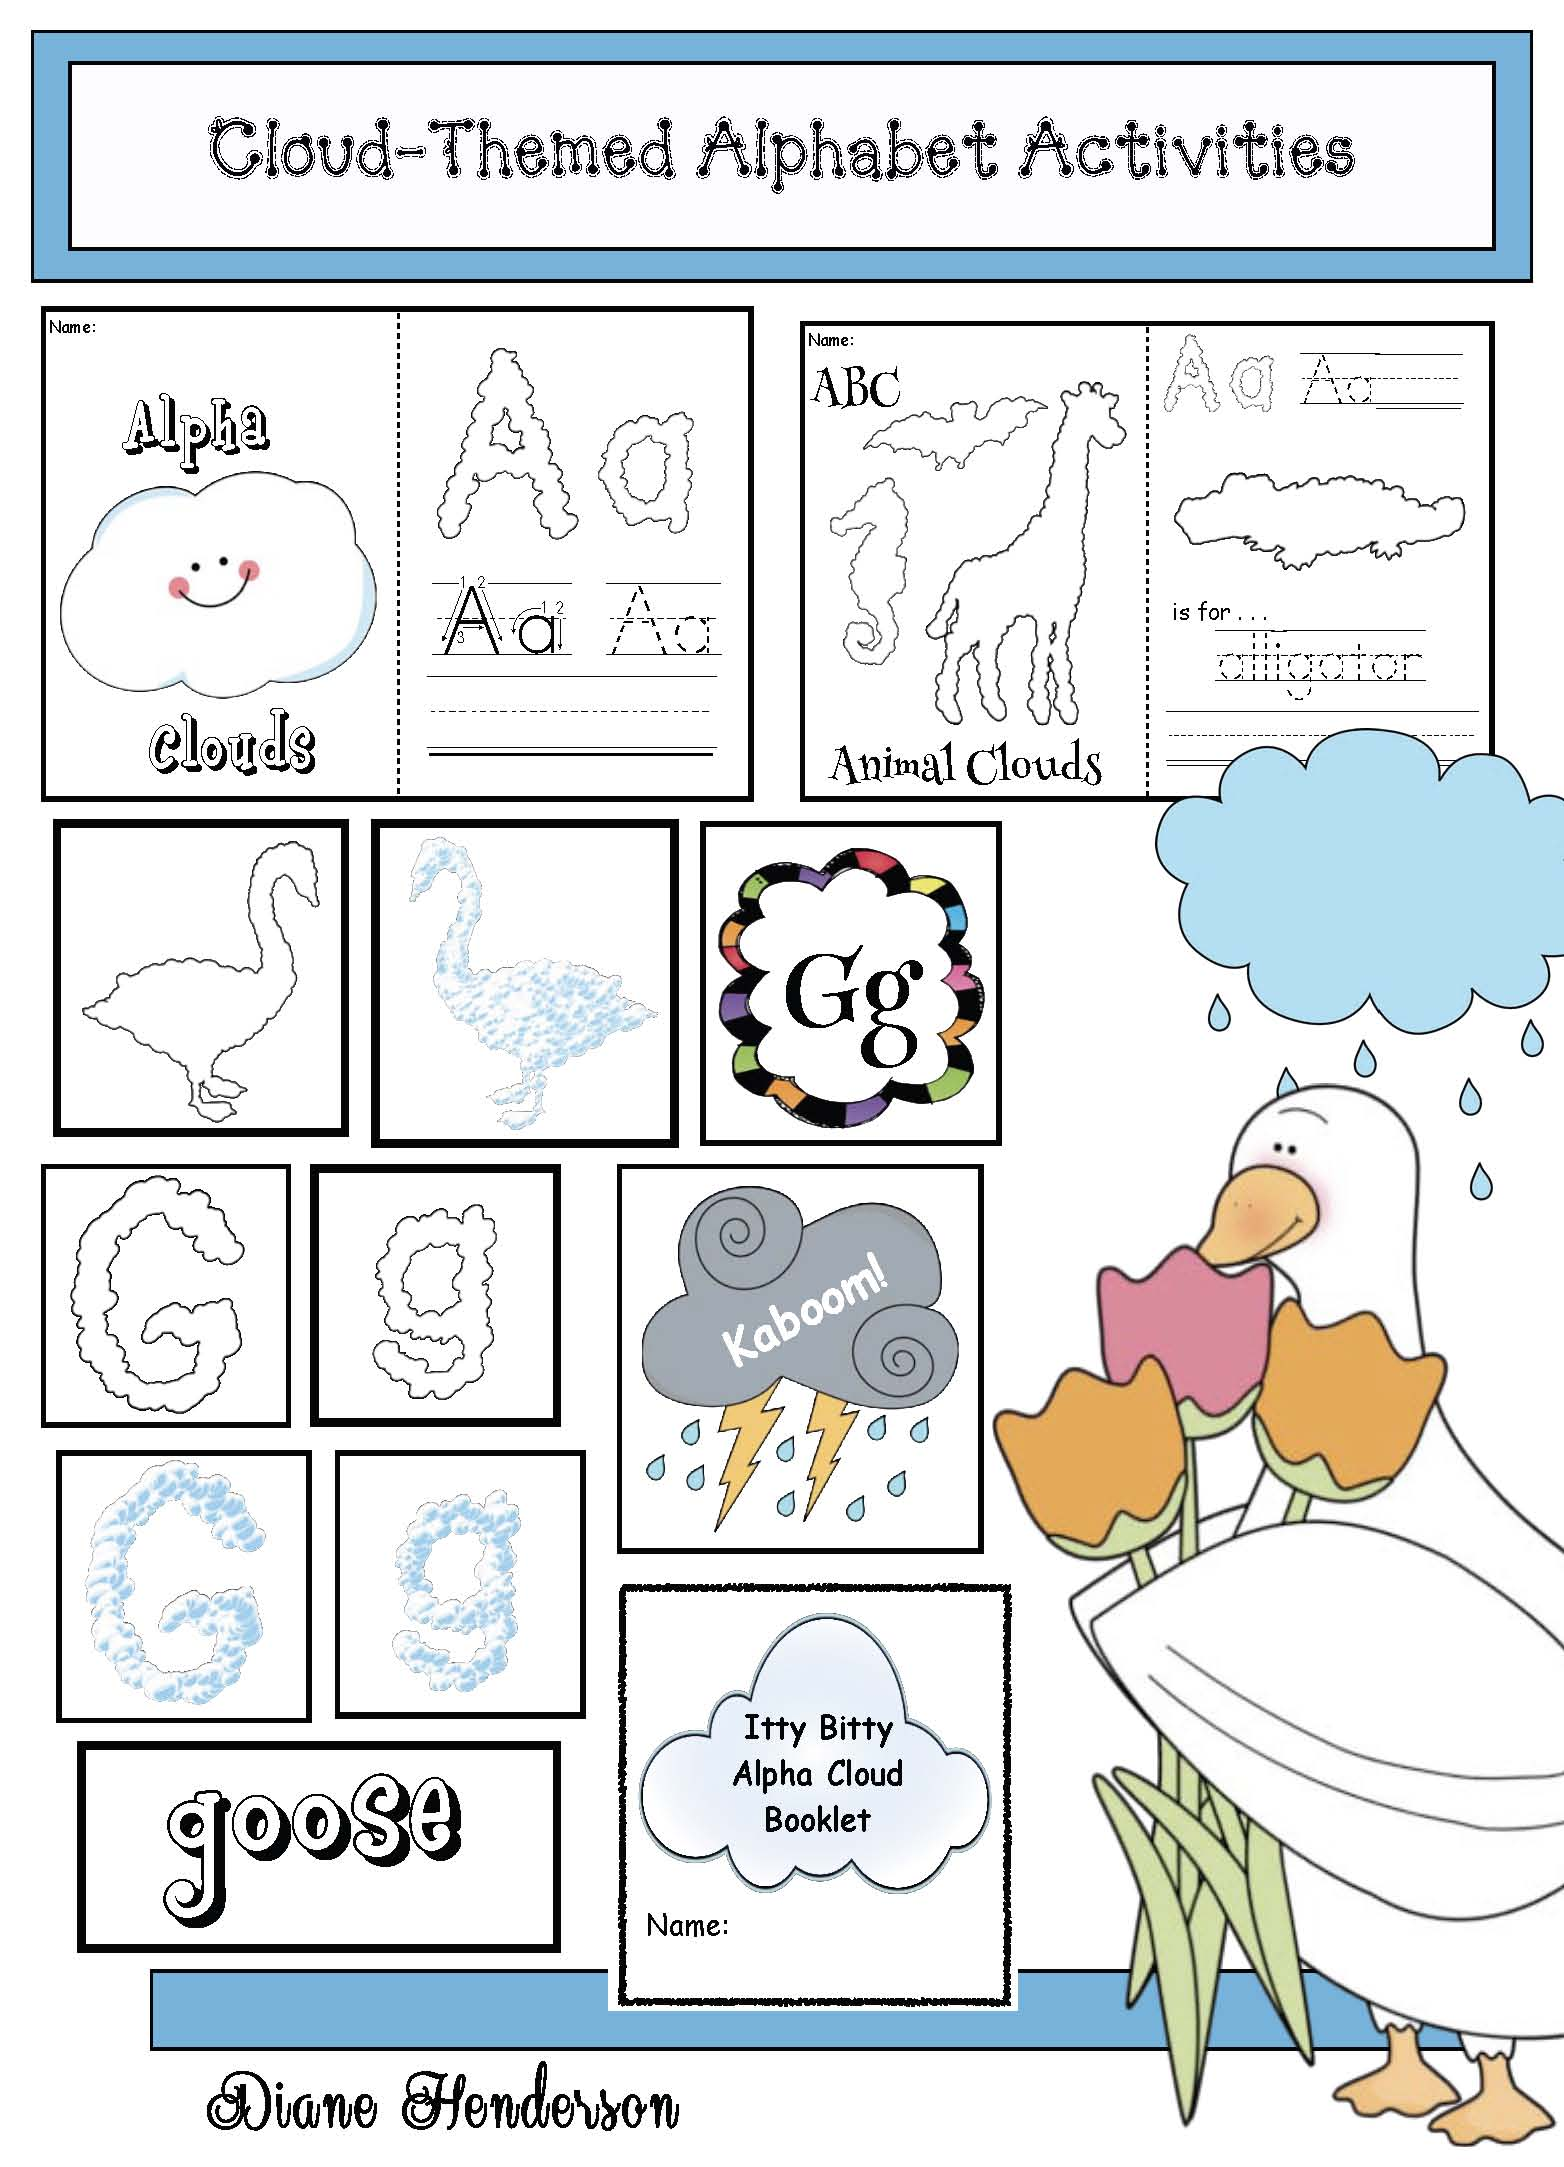 It looked like spilt milk activities, cloud activities, cloud centers, cloud crafts, alphabet activitities, alphabet games, alphabet centers, animal alphabet